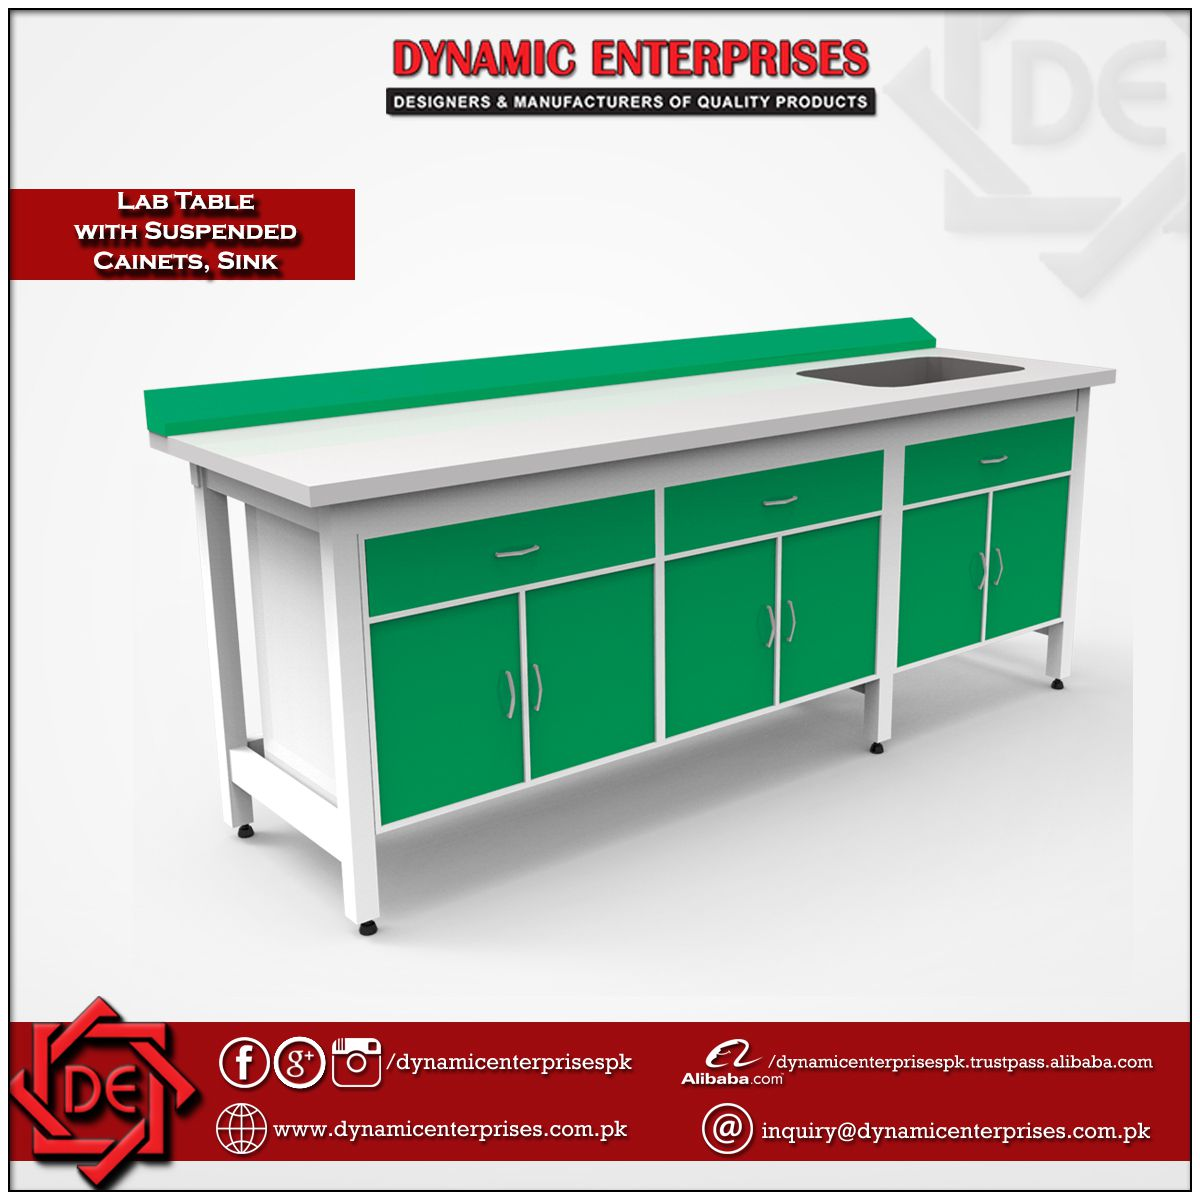 Laboratory Table with Suspended Cabinets, PP Sink & Electrical Panel